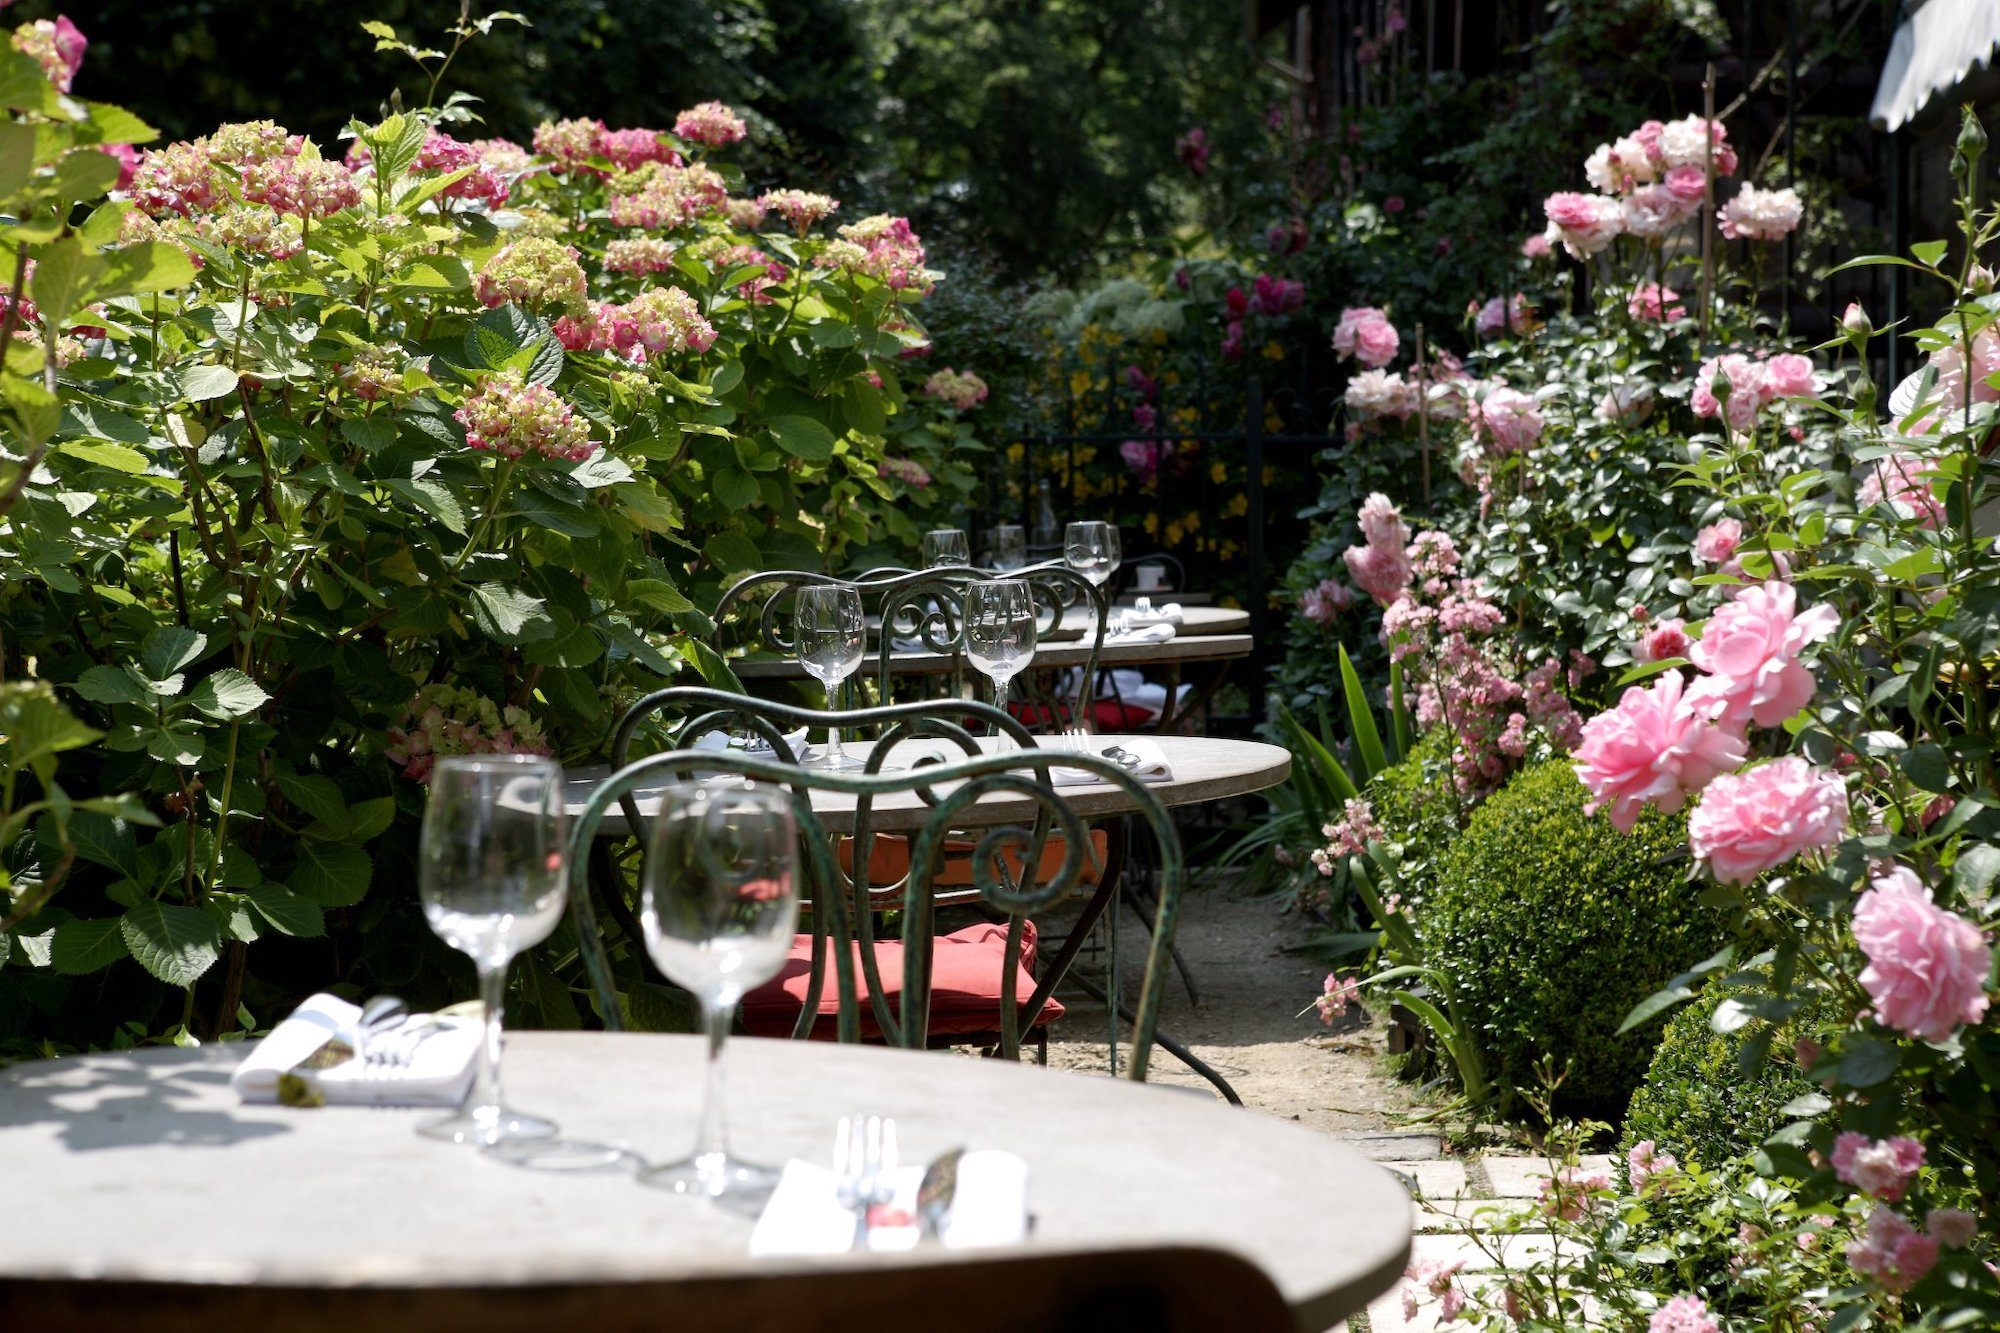 Les Etangs de Corot Hotel garden with tables slotted among the pink rose bushes.